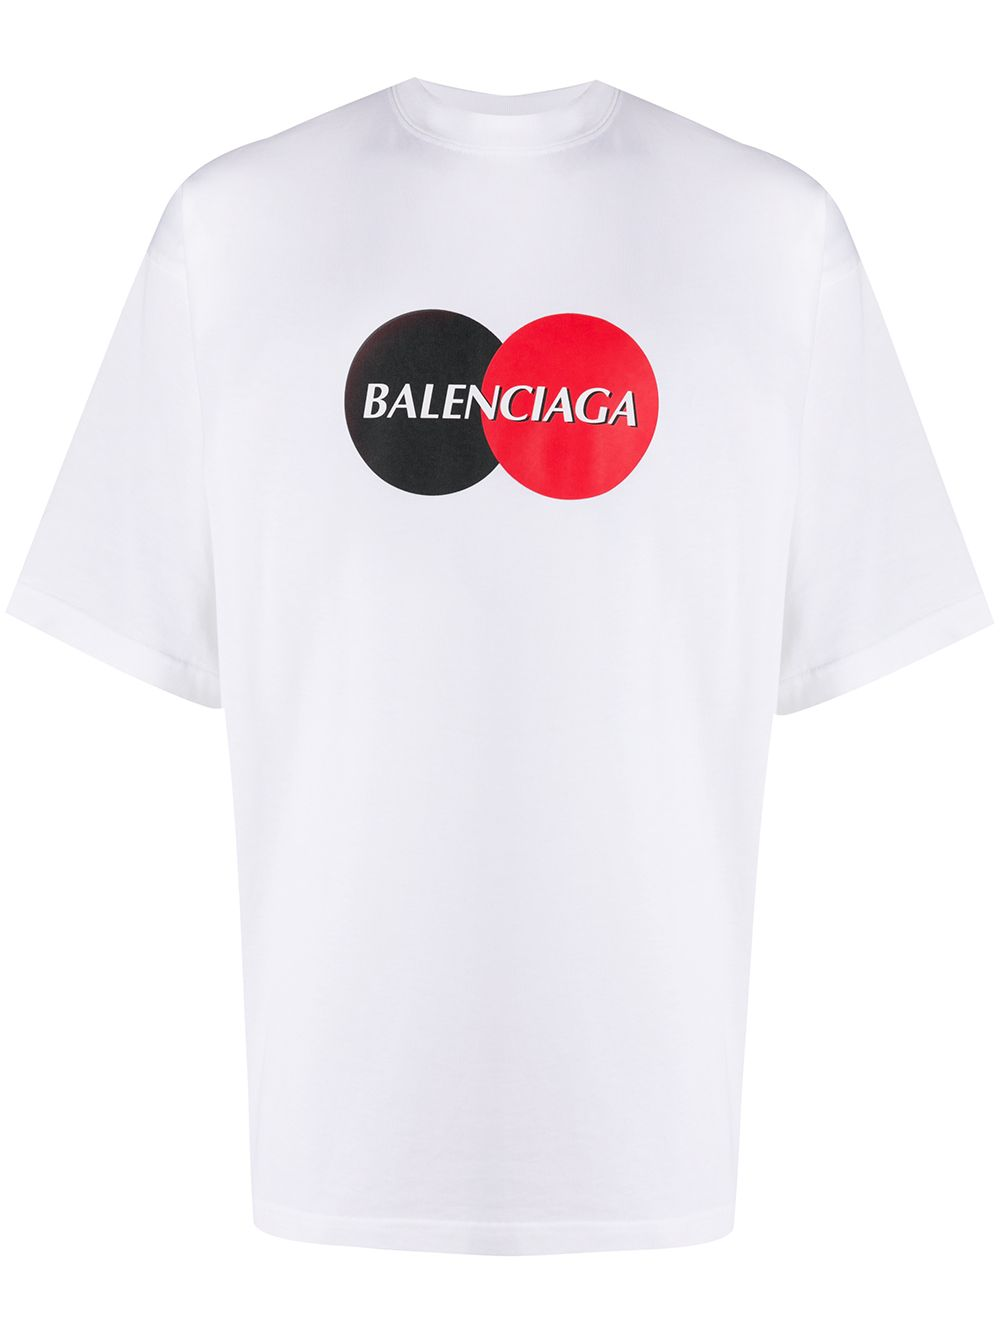 BALENCIAGA uniform logo t-shirt white